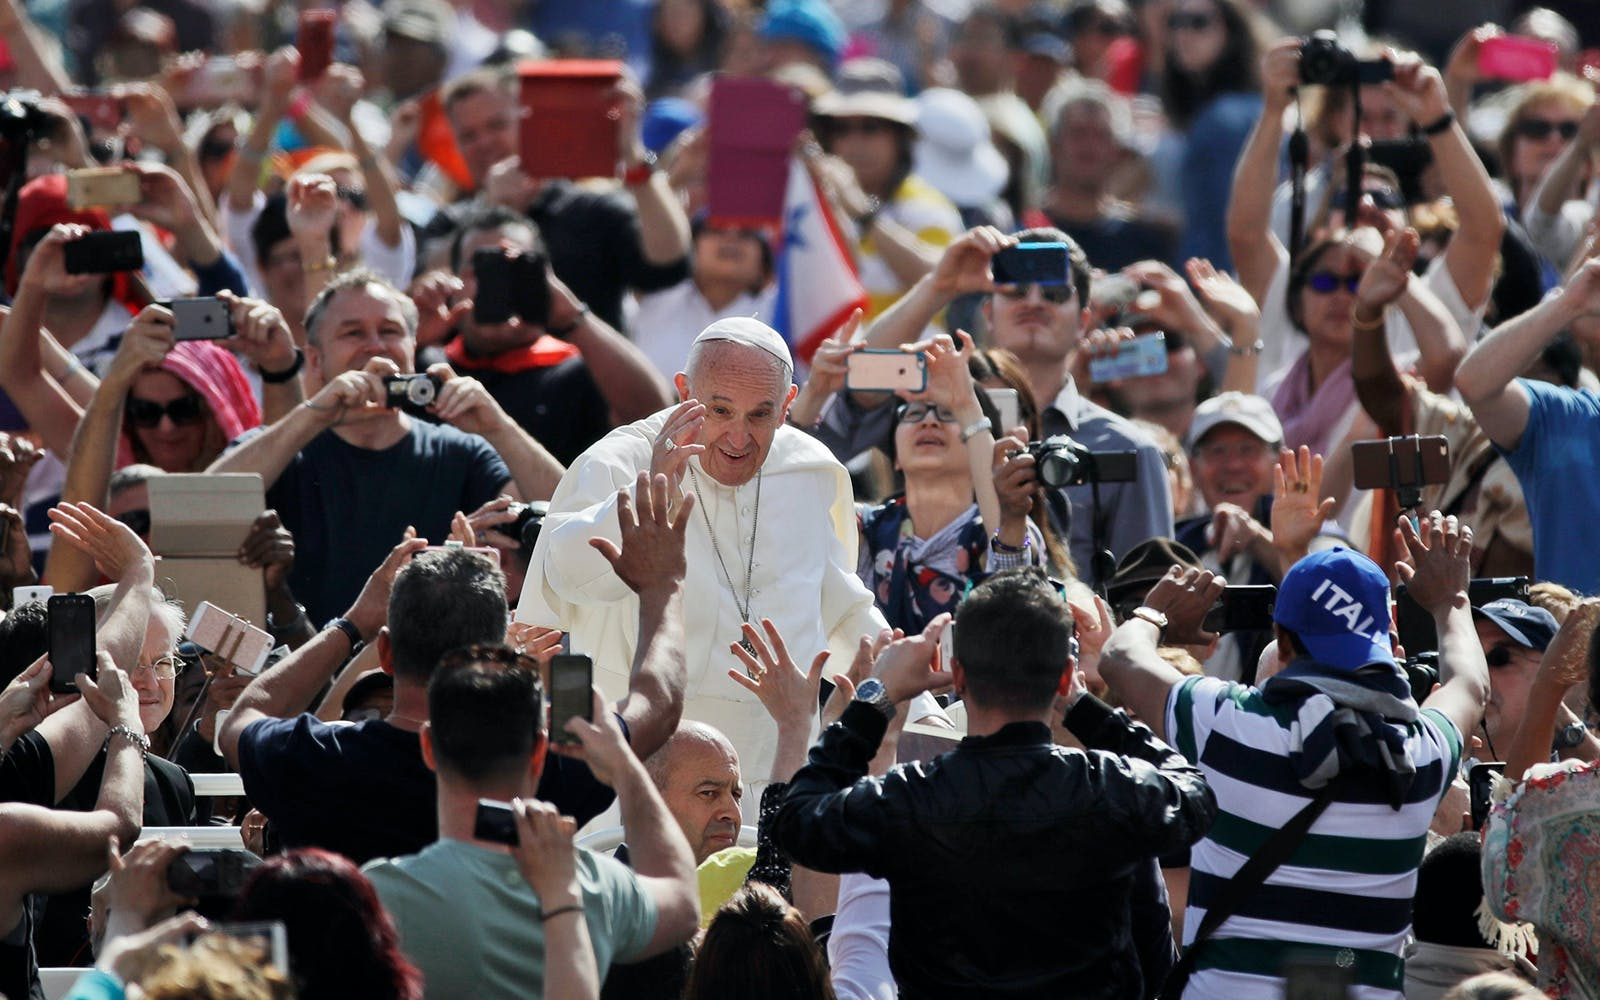 Papal Audience with Pope Francis Experience